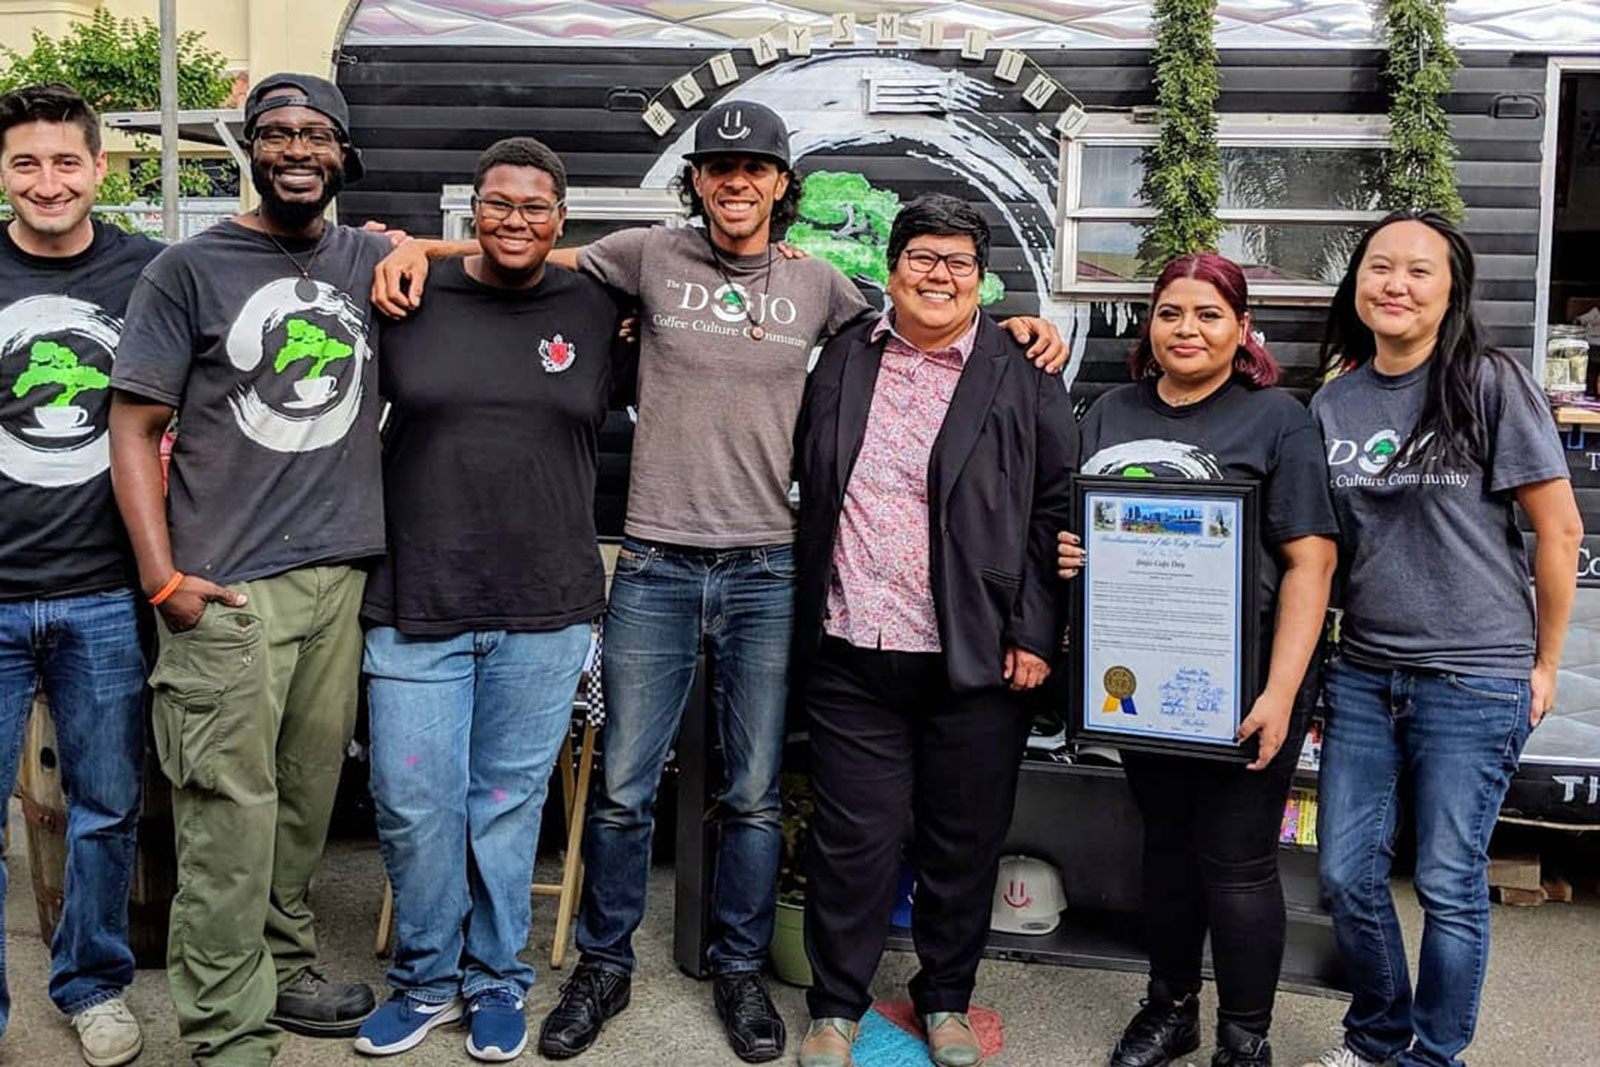 Georgette Gomez issues DOJO Cafe Day proclamation